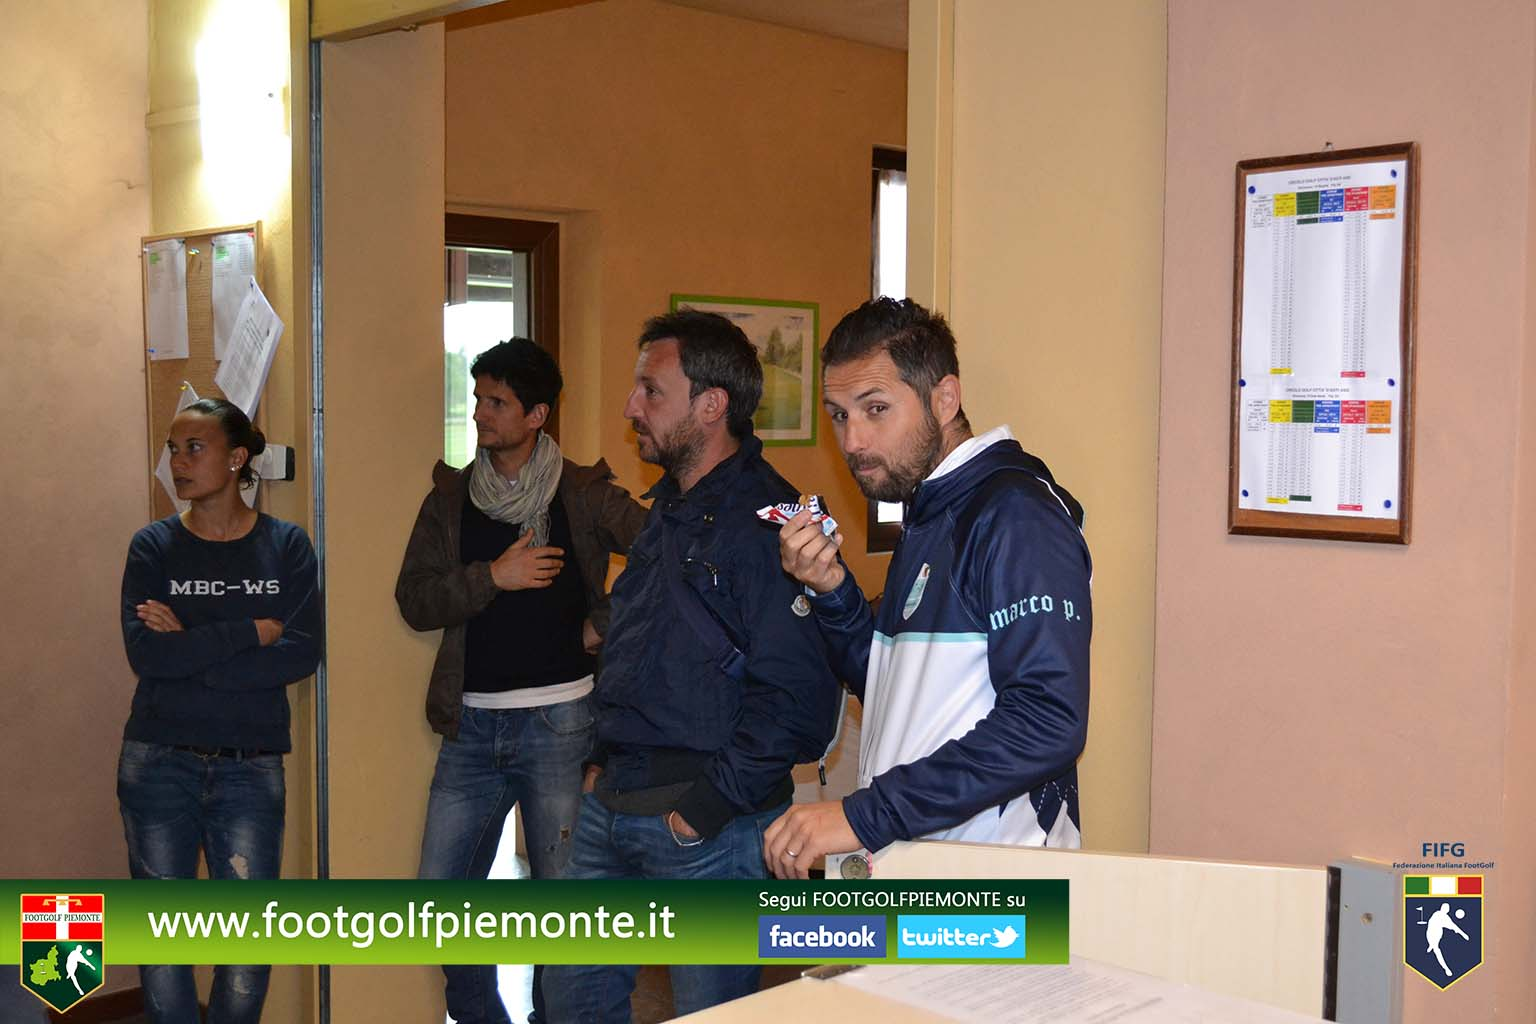 FOTO 9 Regions' Cup Footgolf Piemonte 2016 Golf Città di Asti (At) 30apr16-103